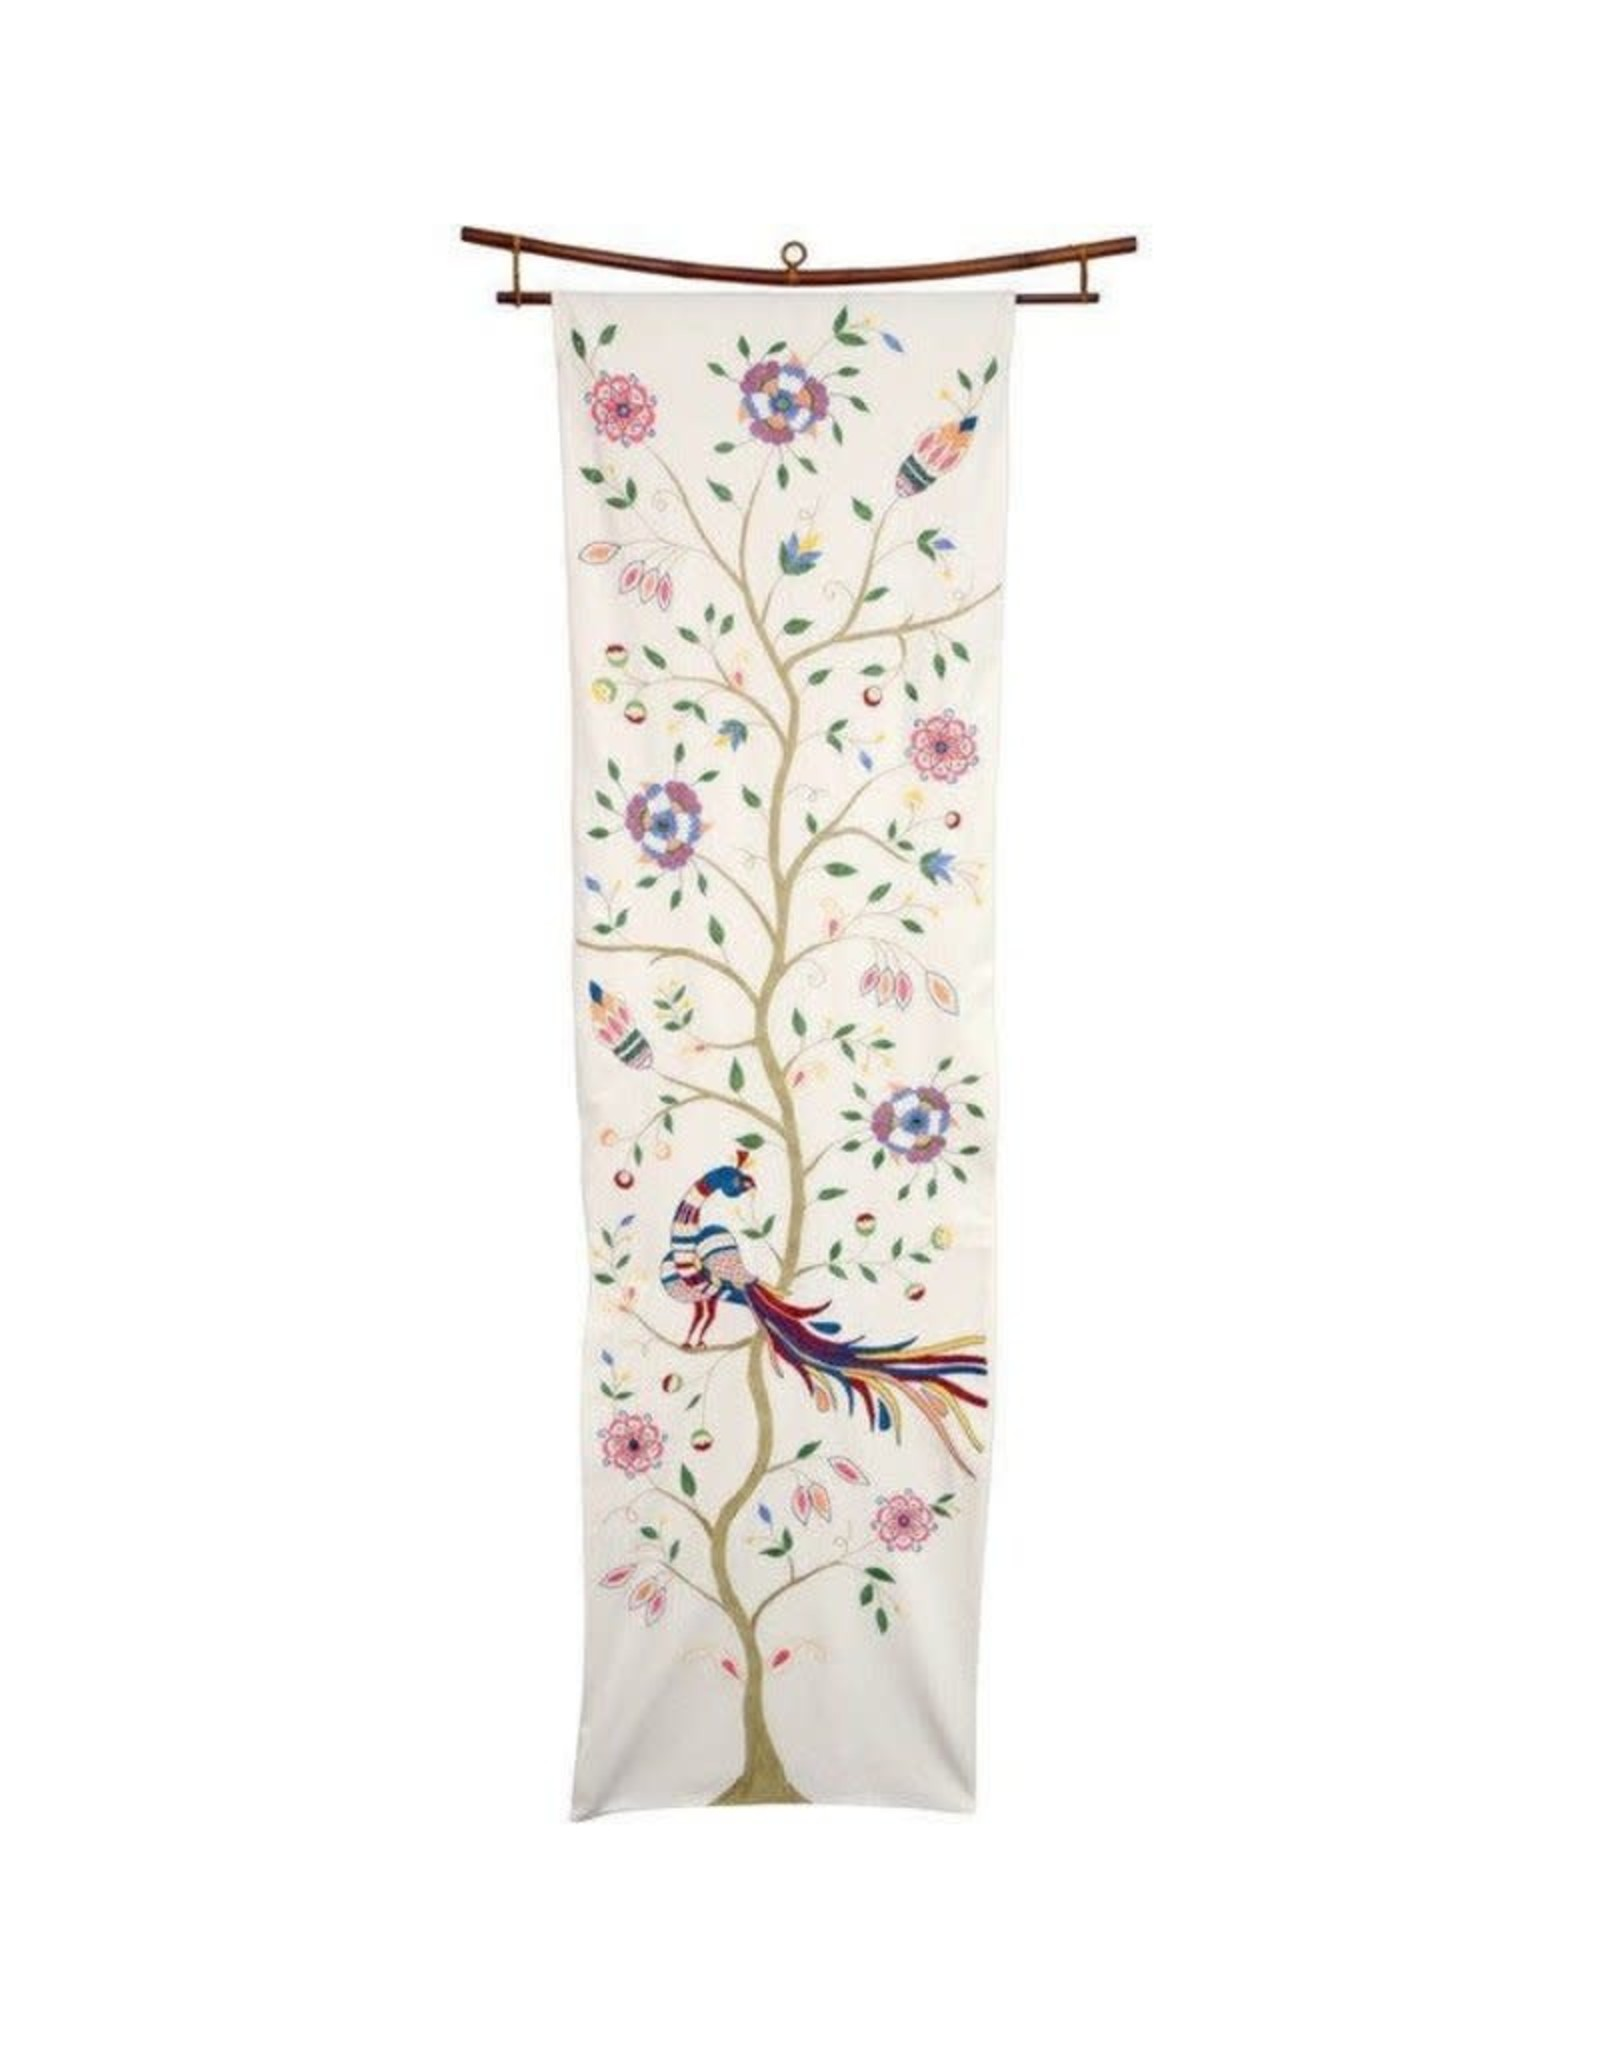 St. Mary's Perching Peacock Wall Hanging